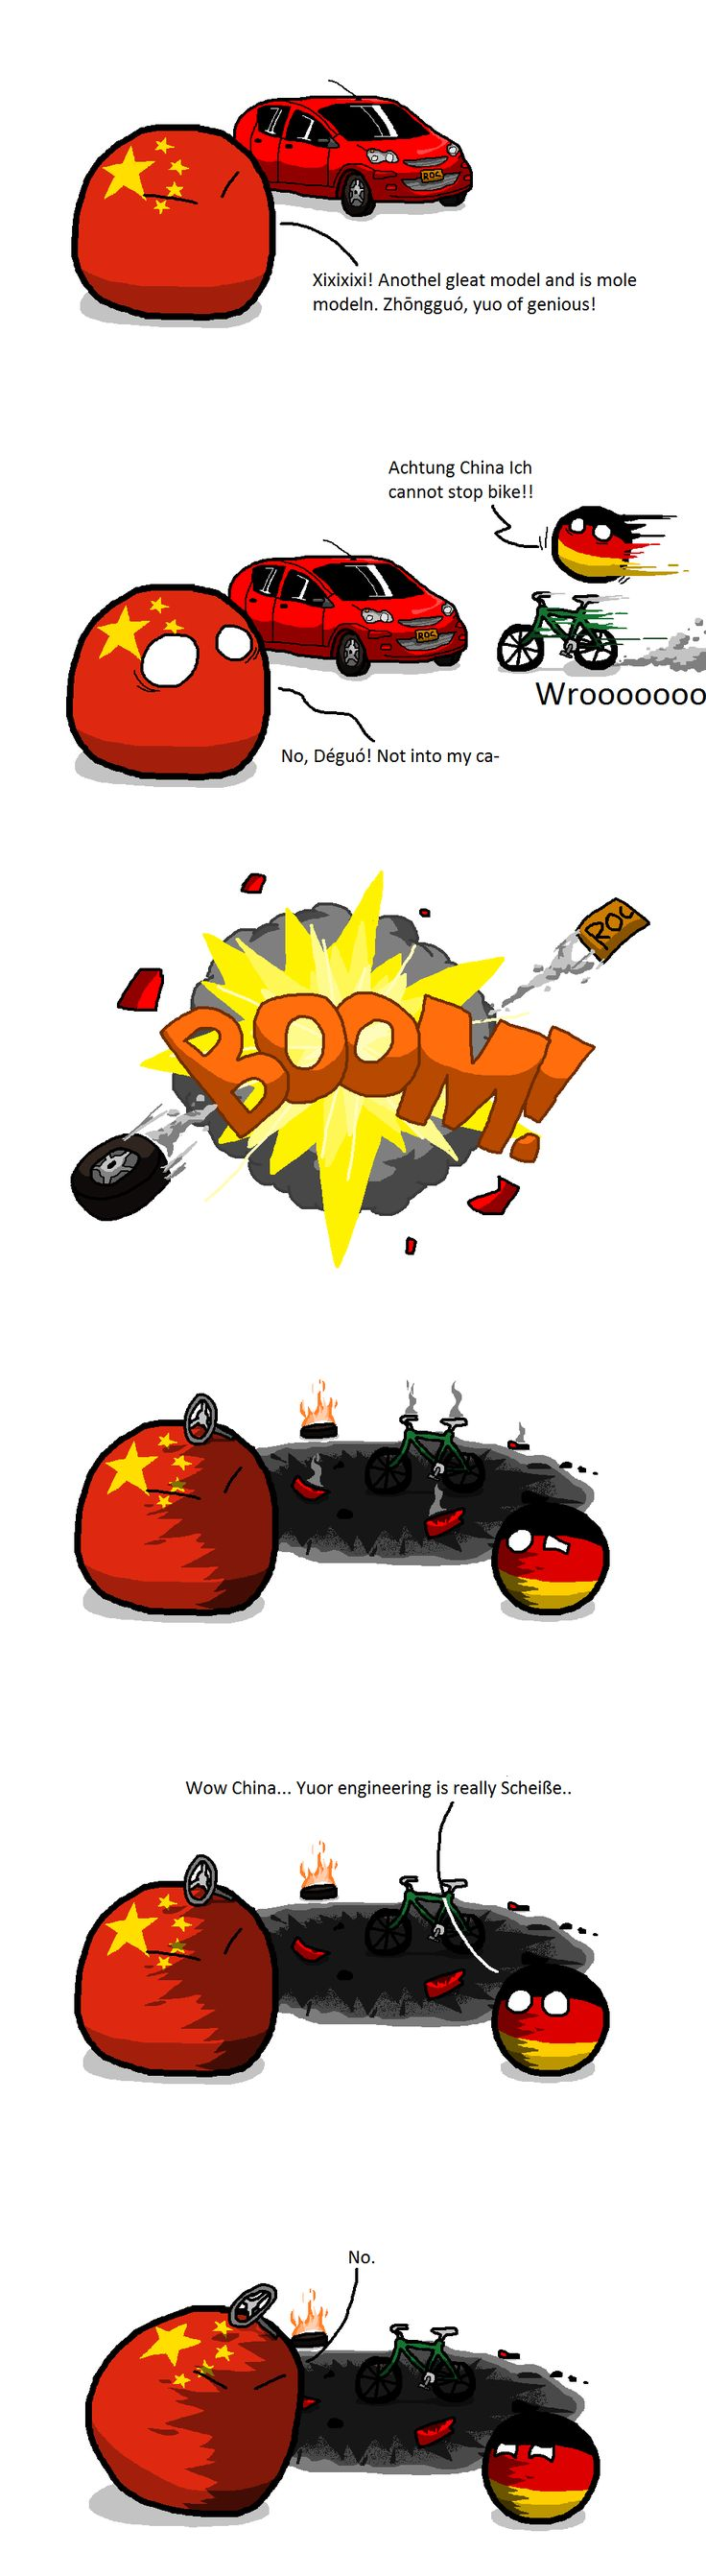 China's Engineering Quality (China, Germany) by  Kaliningrad General #polandball #countryball